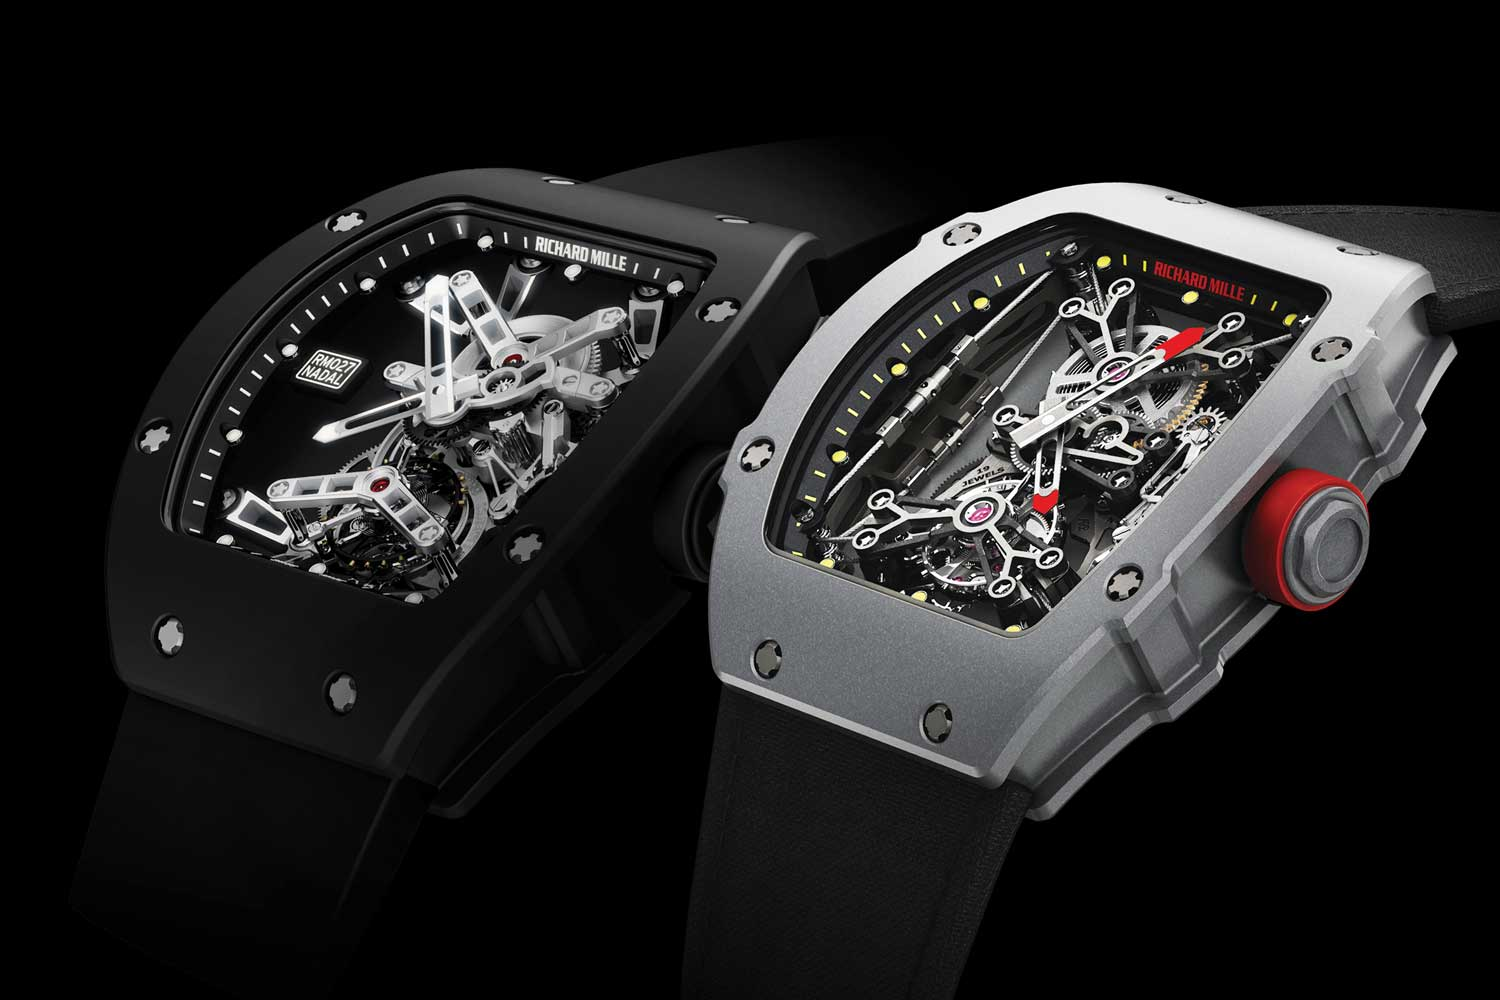 The Richard Mille watches that were specially engineered for Rafael Nadal: the RM 027 (left) and RM 27-01